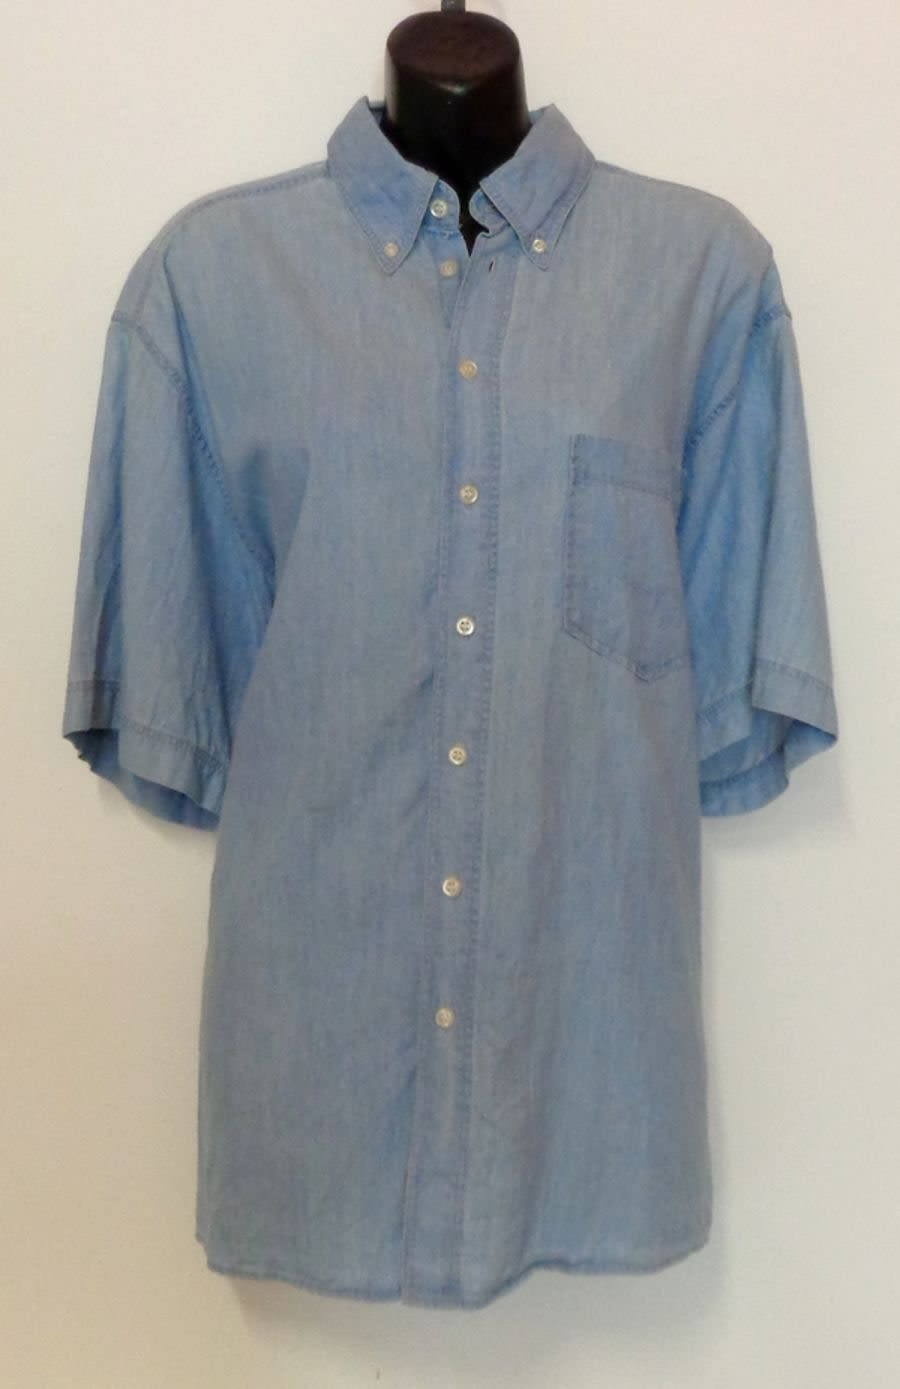 Vintage Oversized Short Sleeve Denim Shirt